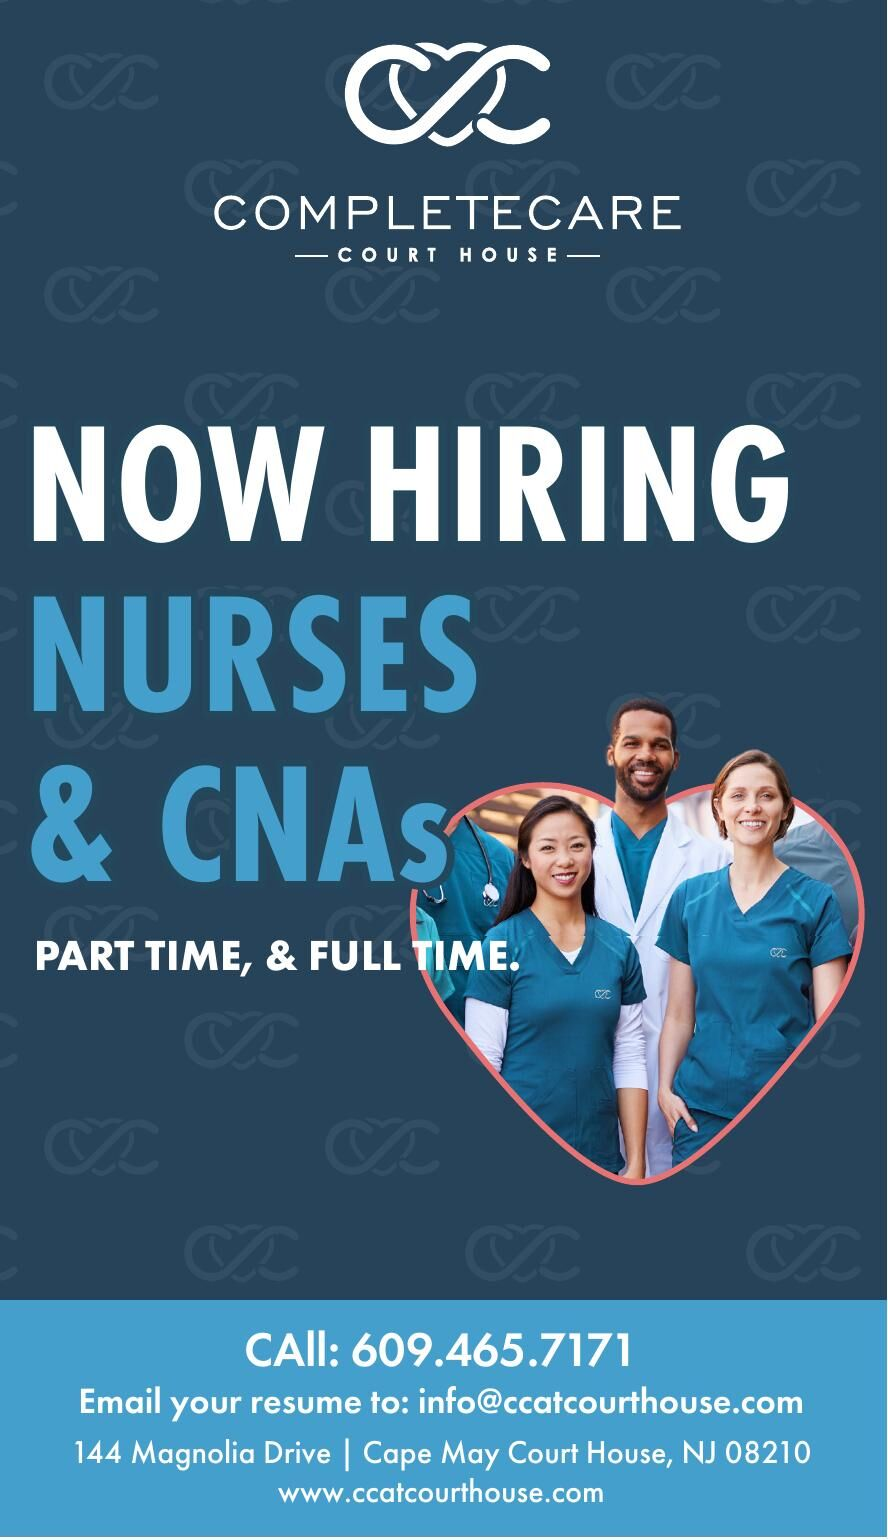 CompleteCare/CMCH NOW HIRING NURSES AND CNAs